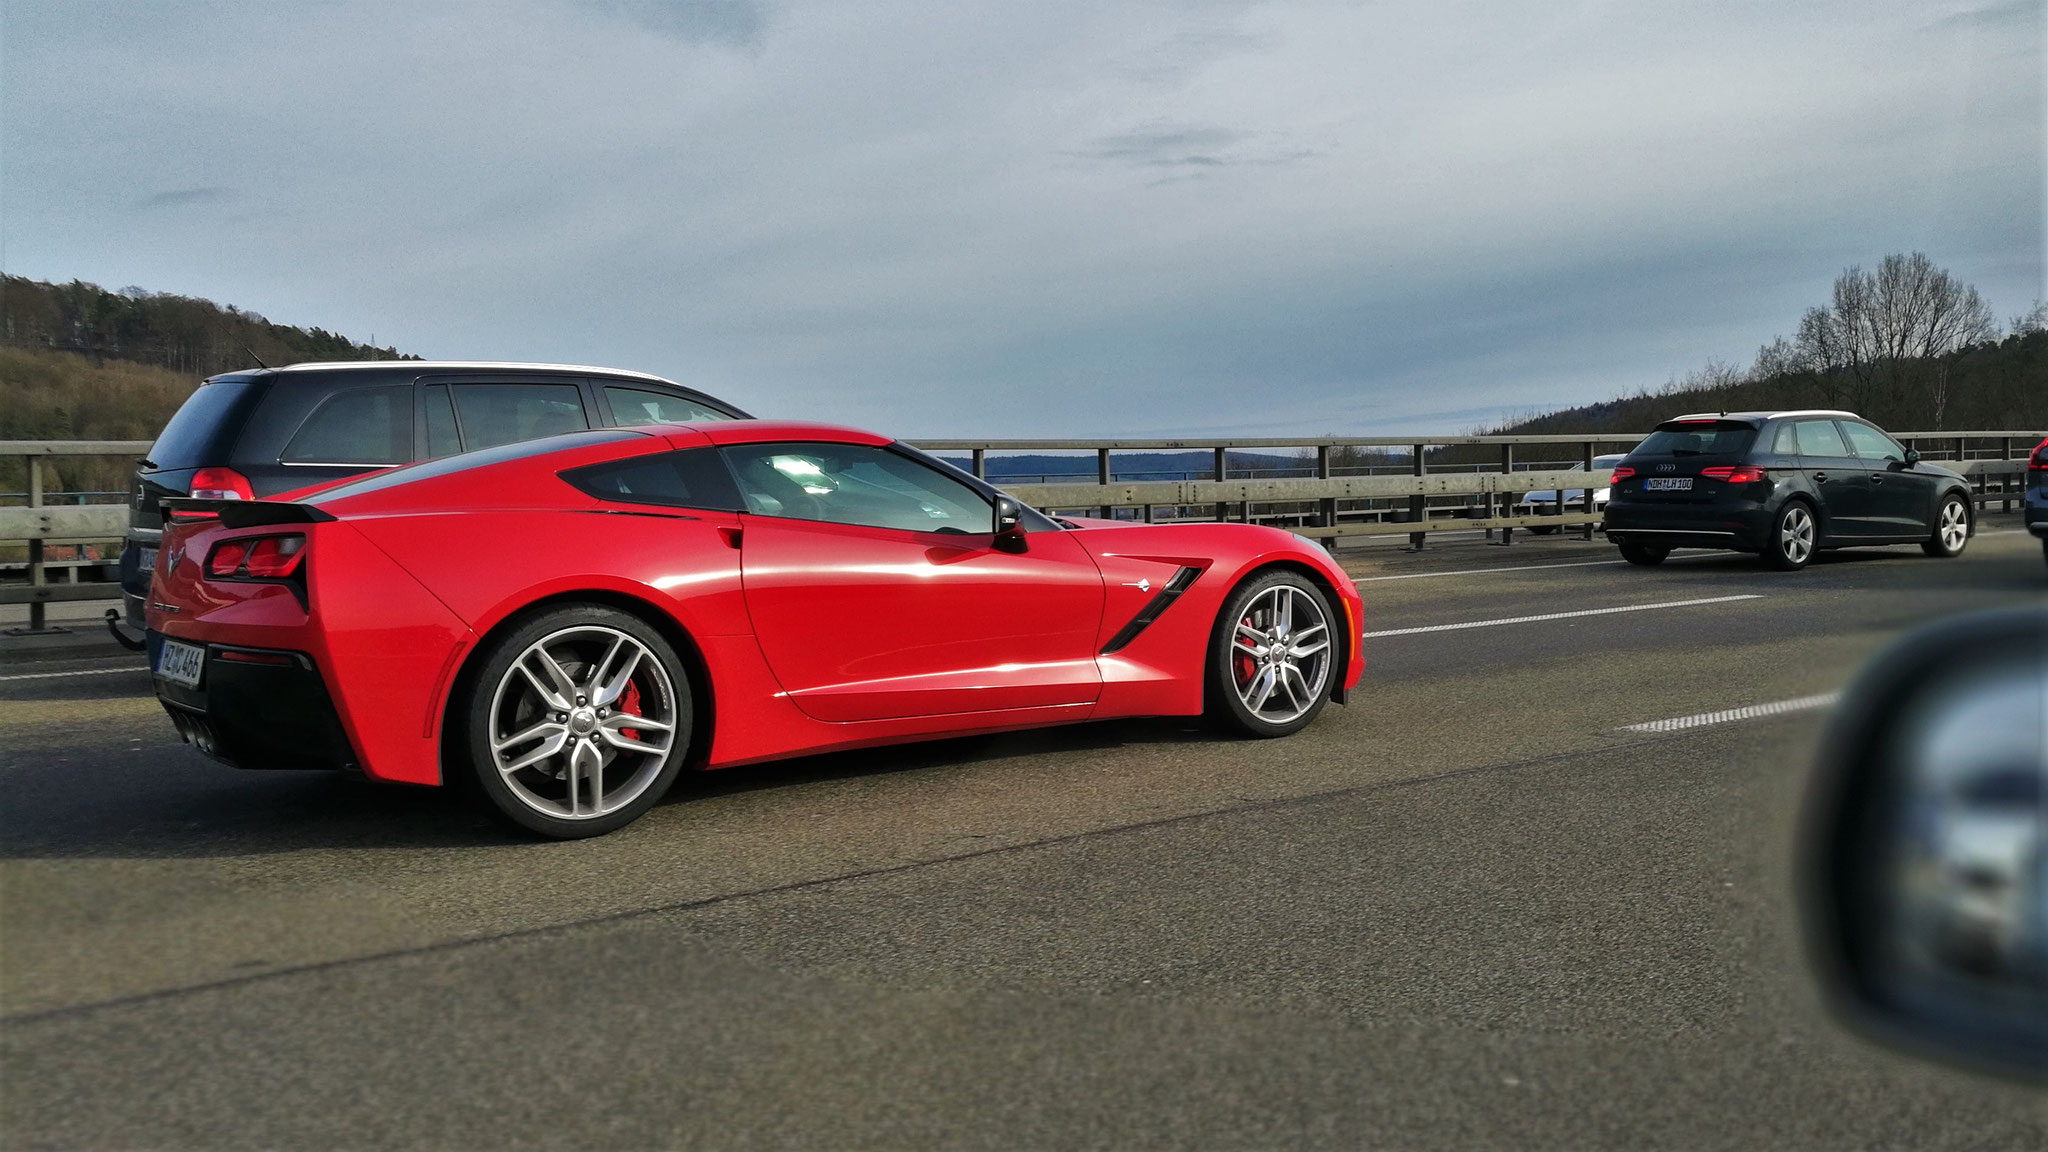 Chevrolet Corvette C7 Stingray - HZ-C-466